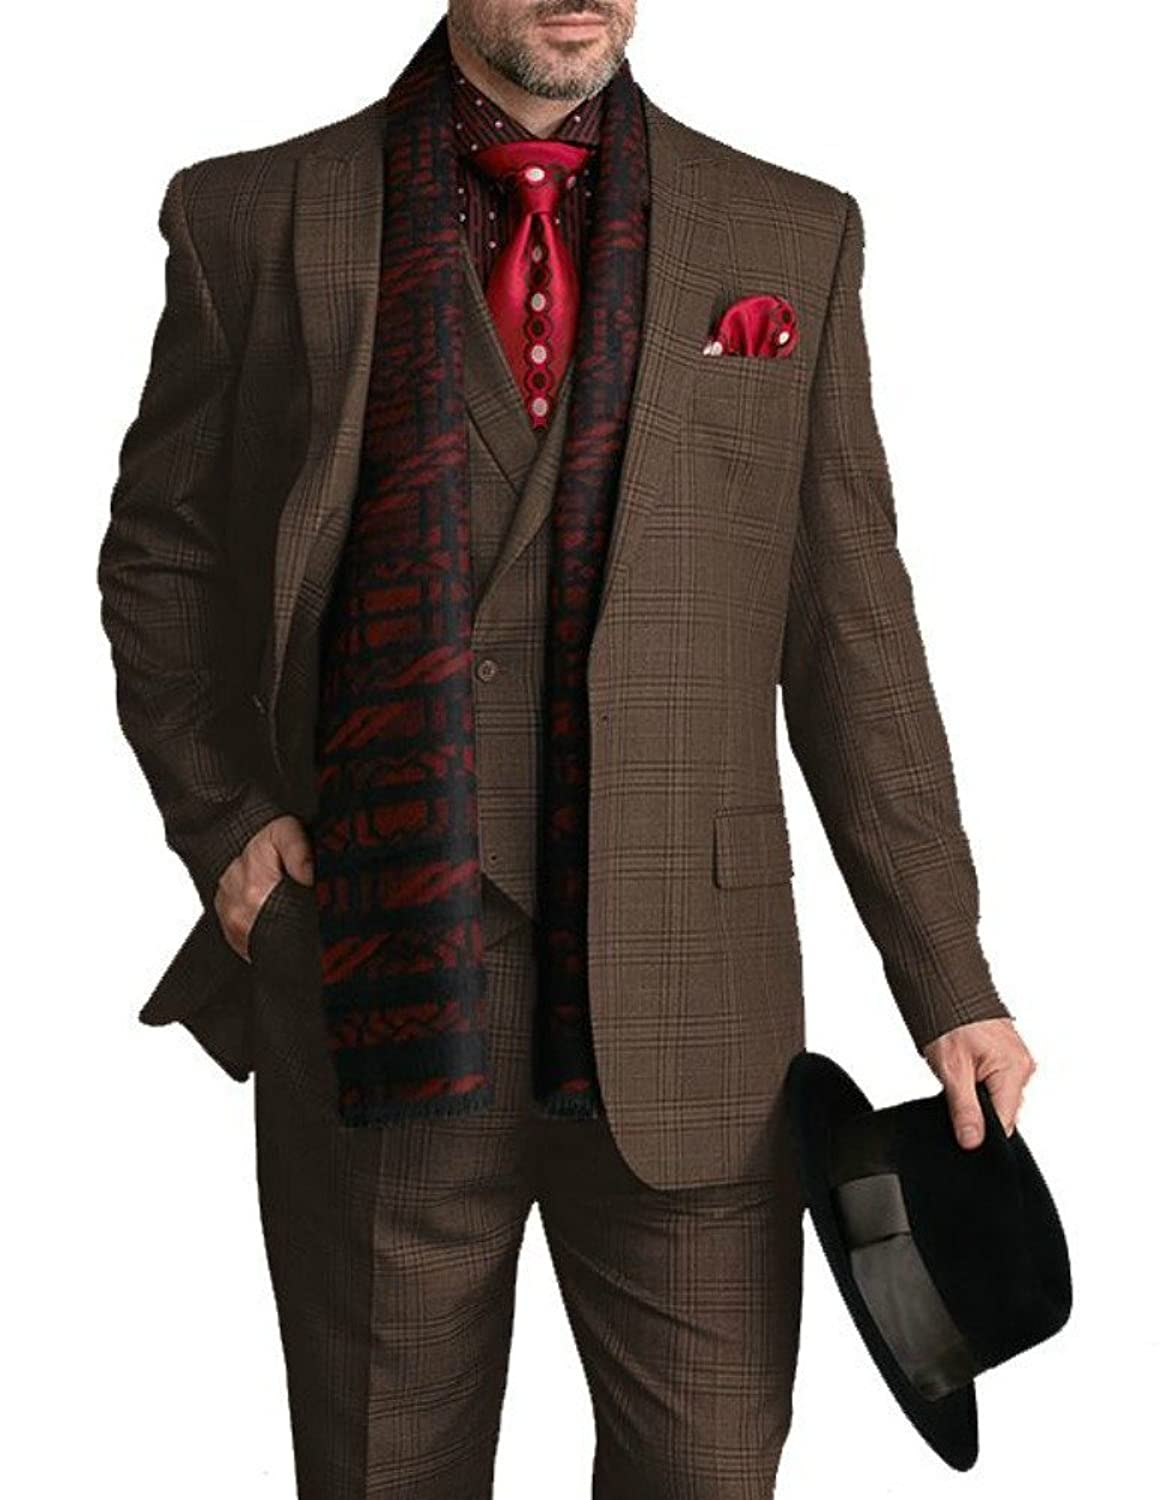 Men's Vintage Style Suits, Classic Suits Steven Land Mens Brown Plaid Single Button Three Piece Suit With Peak Lapels $219.00 AT vintagedancer.com